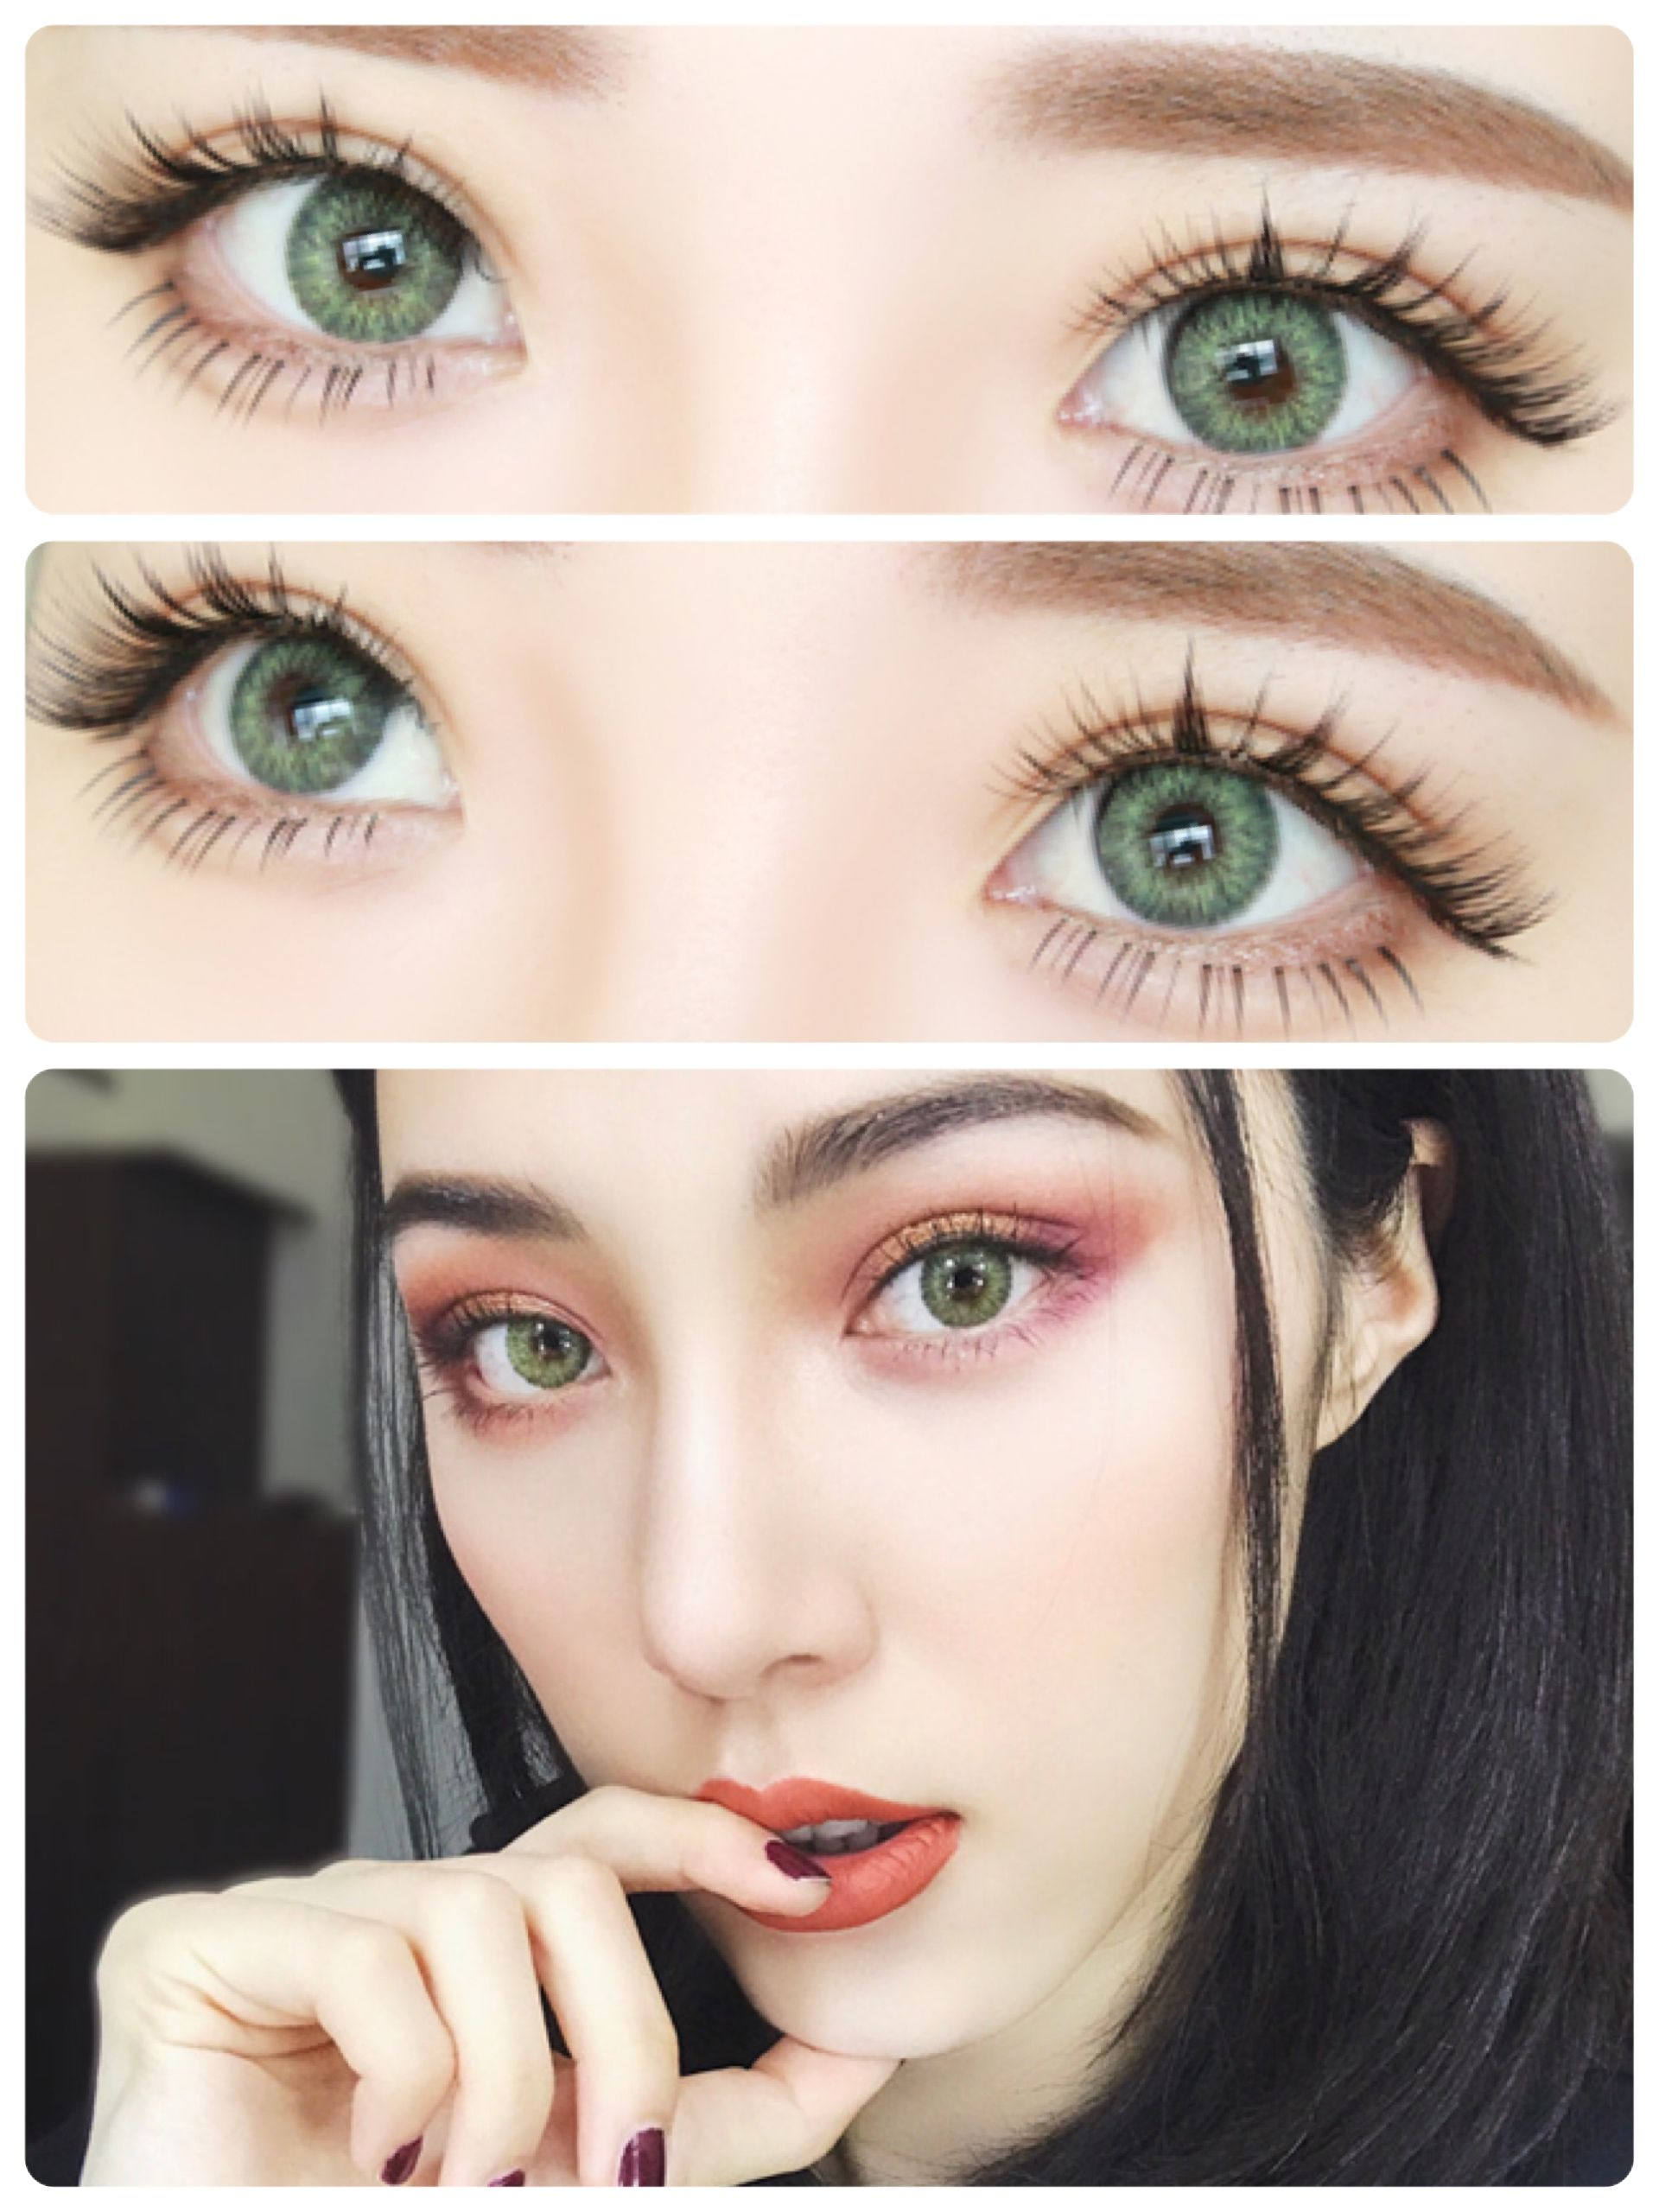 Freshlook Colored Contact Lenses From Eyecandys These